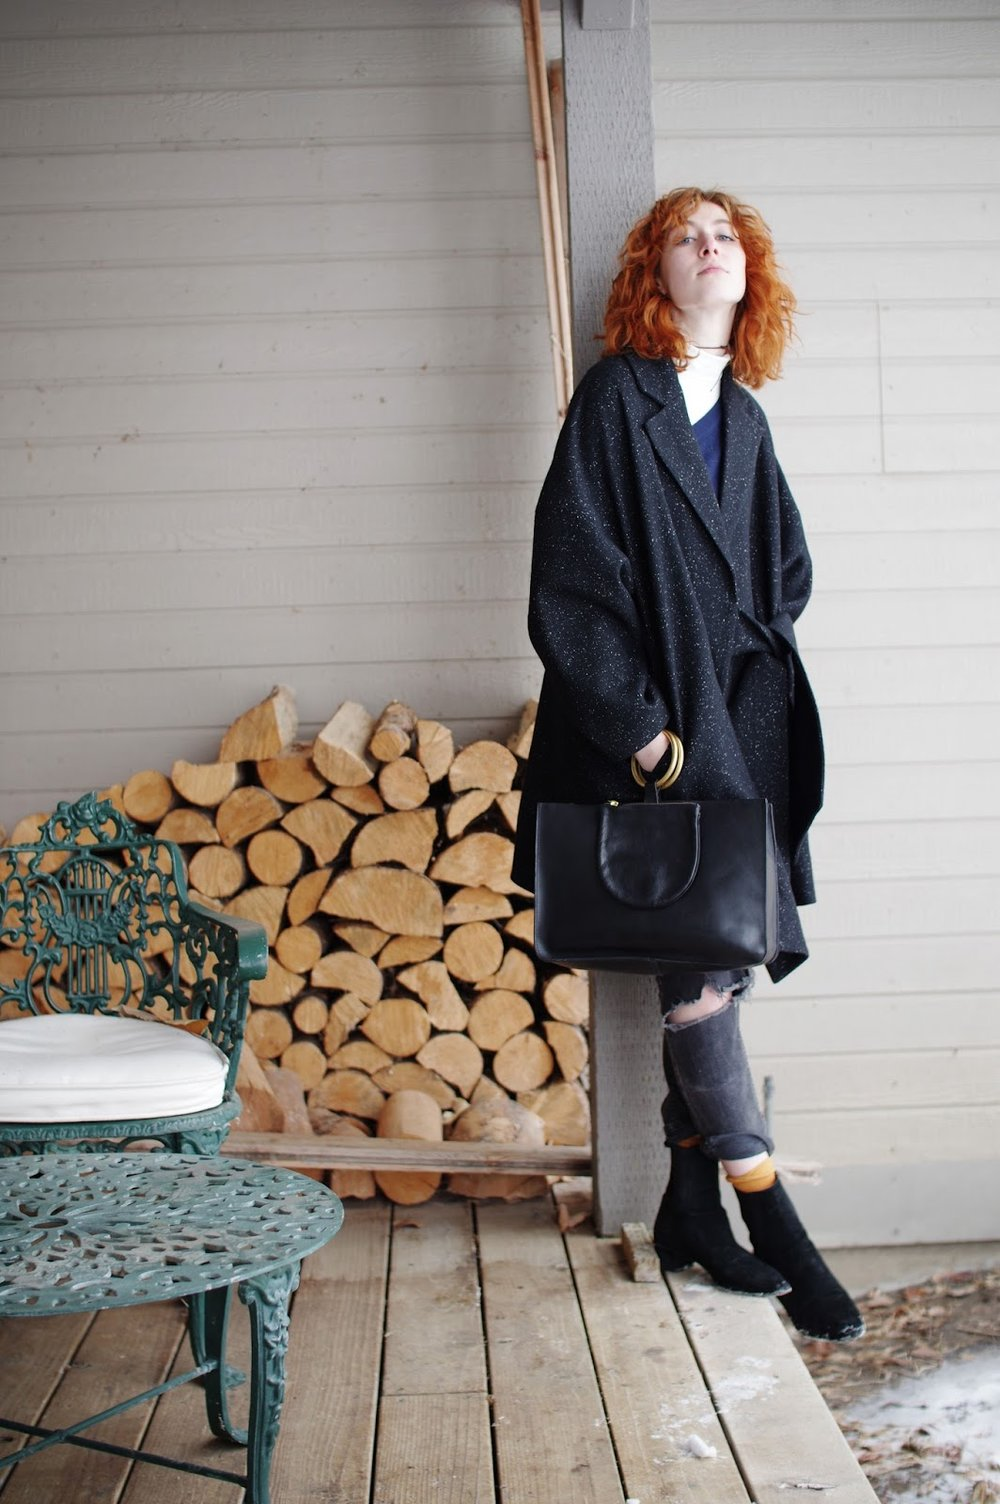 runway unicorn, runwayunicorn, delune, clairegeist, new york fashion, new york fashion magazine, boucle coat, wool coat, wrap coat, black coat, collaboration, deluneblog, junelemongirl, new york fashion blogger, street fashion, street style, distressed jeans, black suede boots, red hair